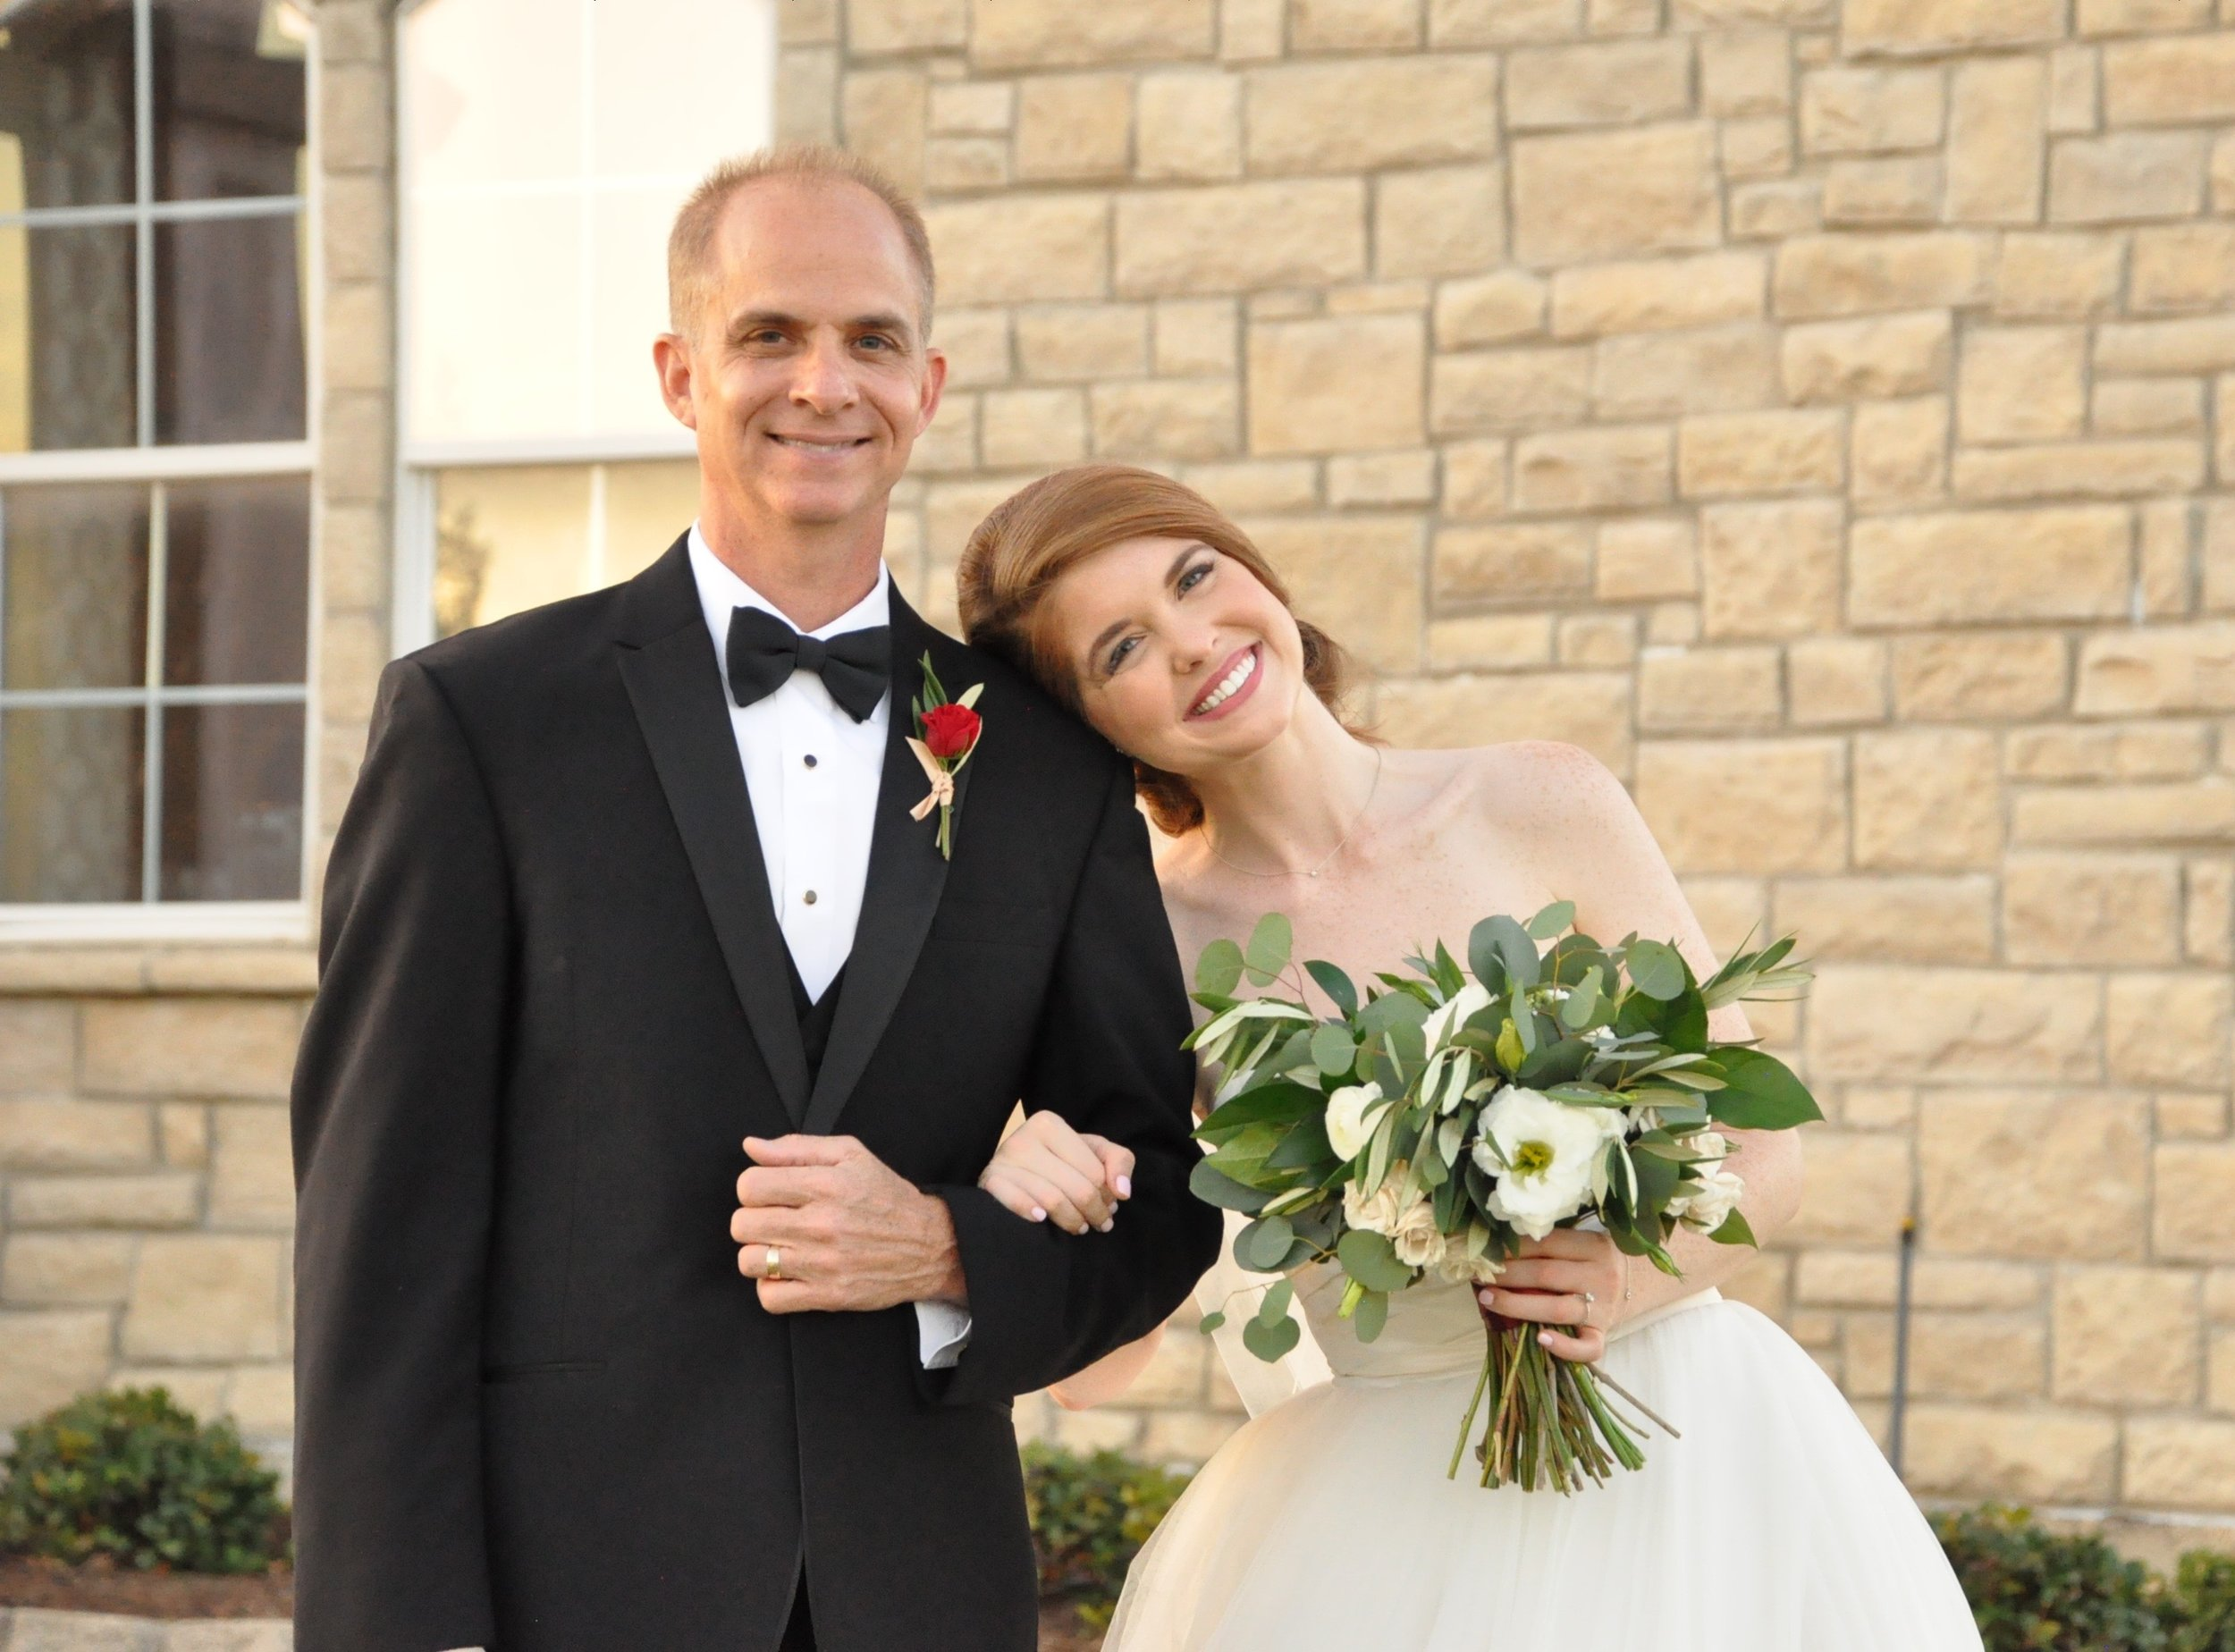 father's day, wonder woman, the castle at rockwall, heidi lockhart somes, dallas wedding, dallas blogger, lments of style